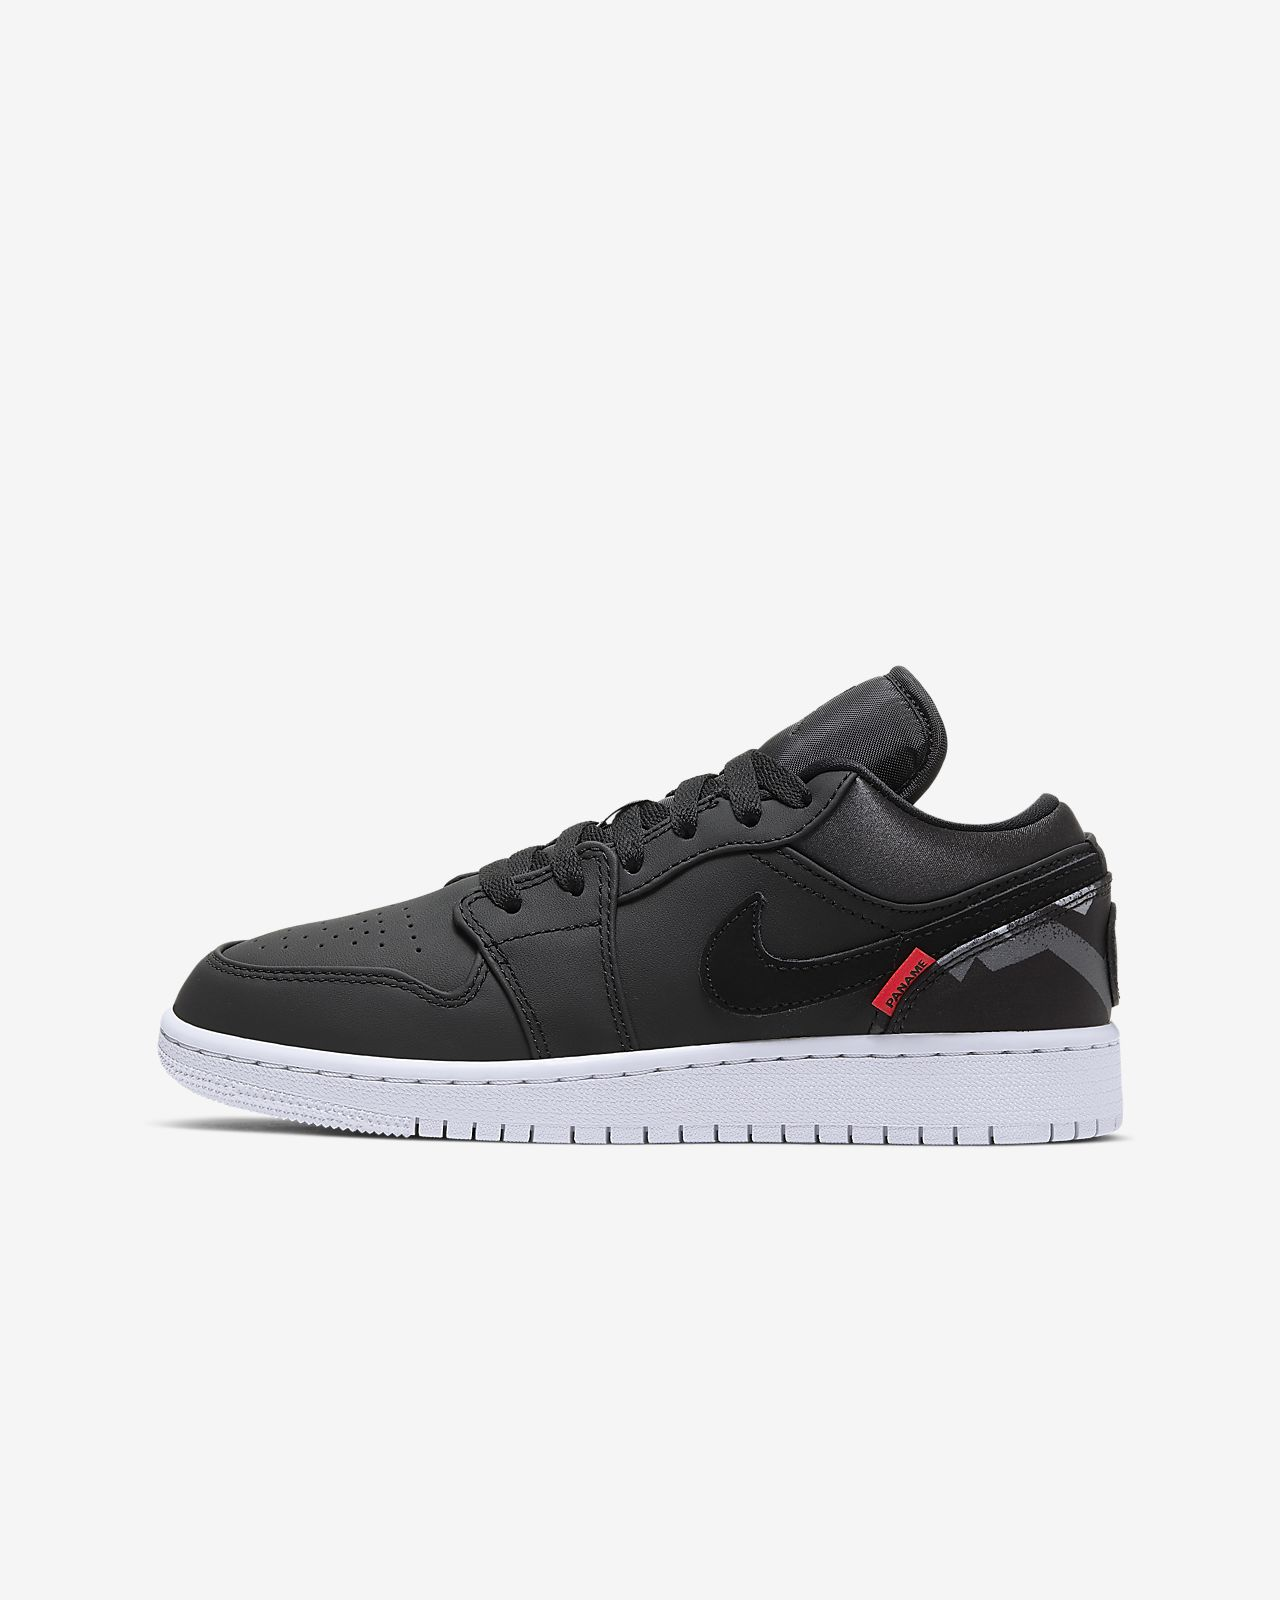 Air Jordan 1 Low Paris Saint-Germain Older Kids' Shoe